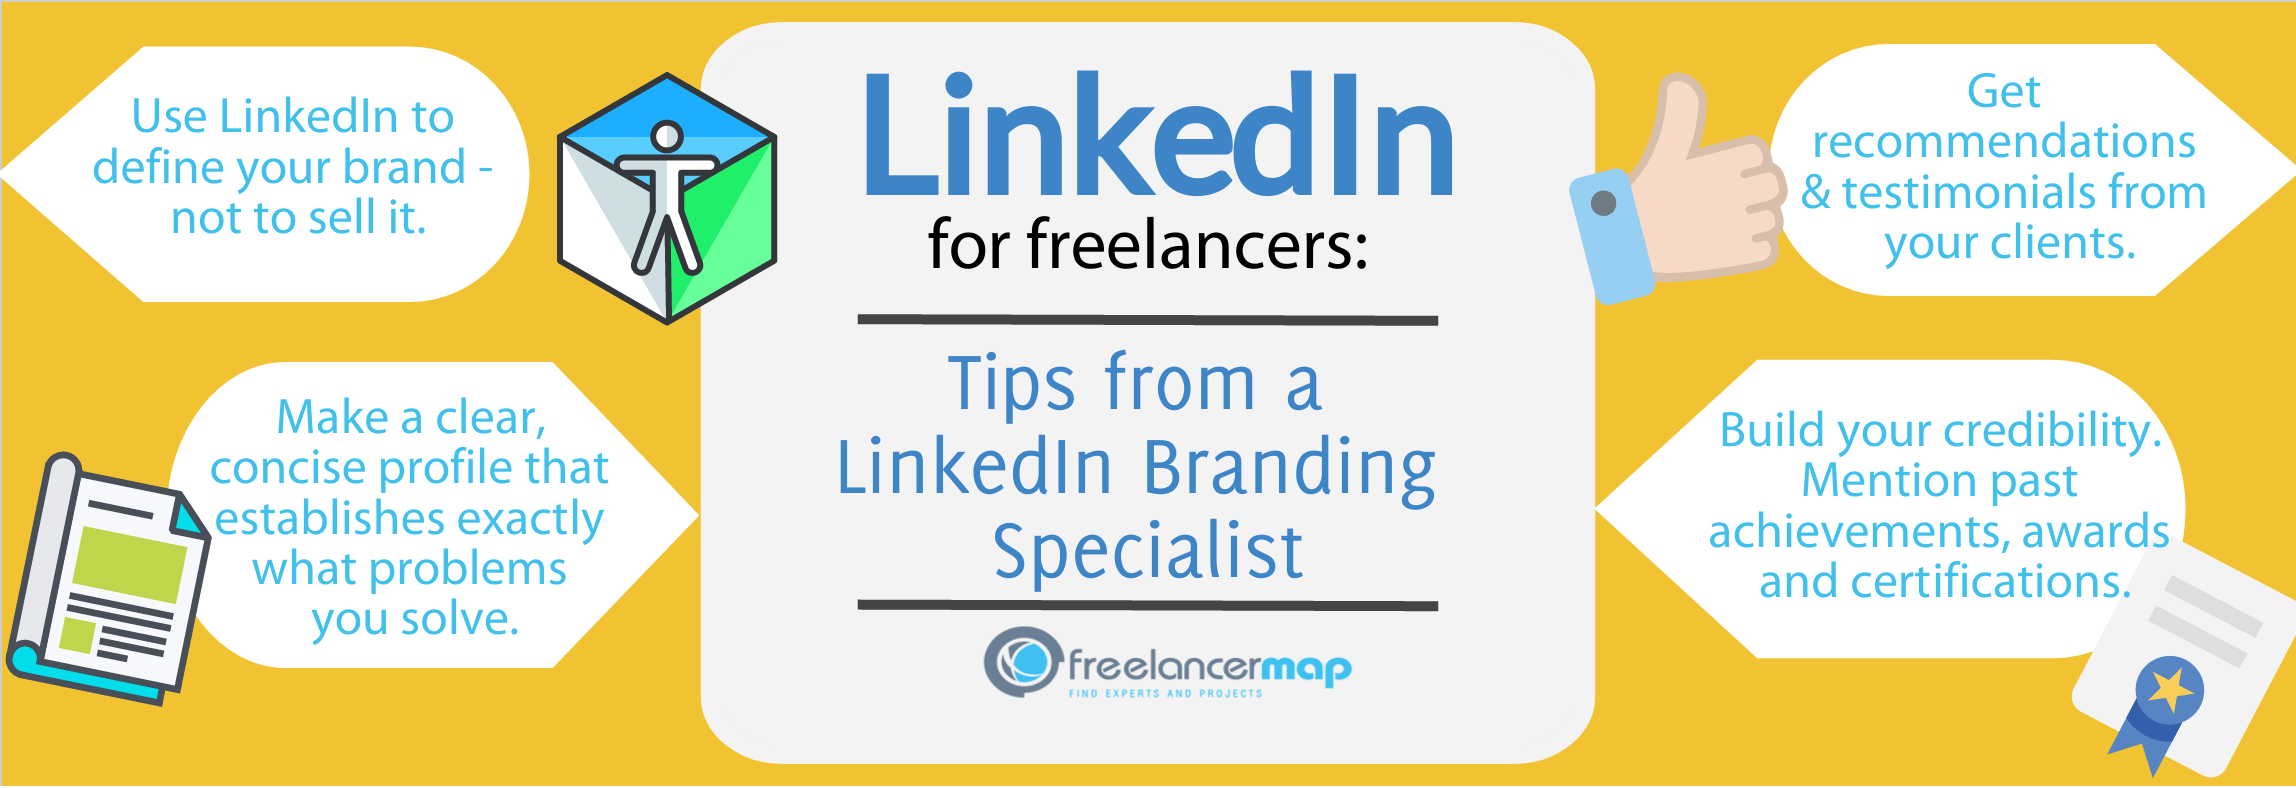 Linkedin For Freelancers Tips From A Linkedin Branding Specialist